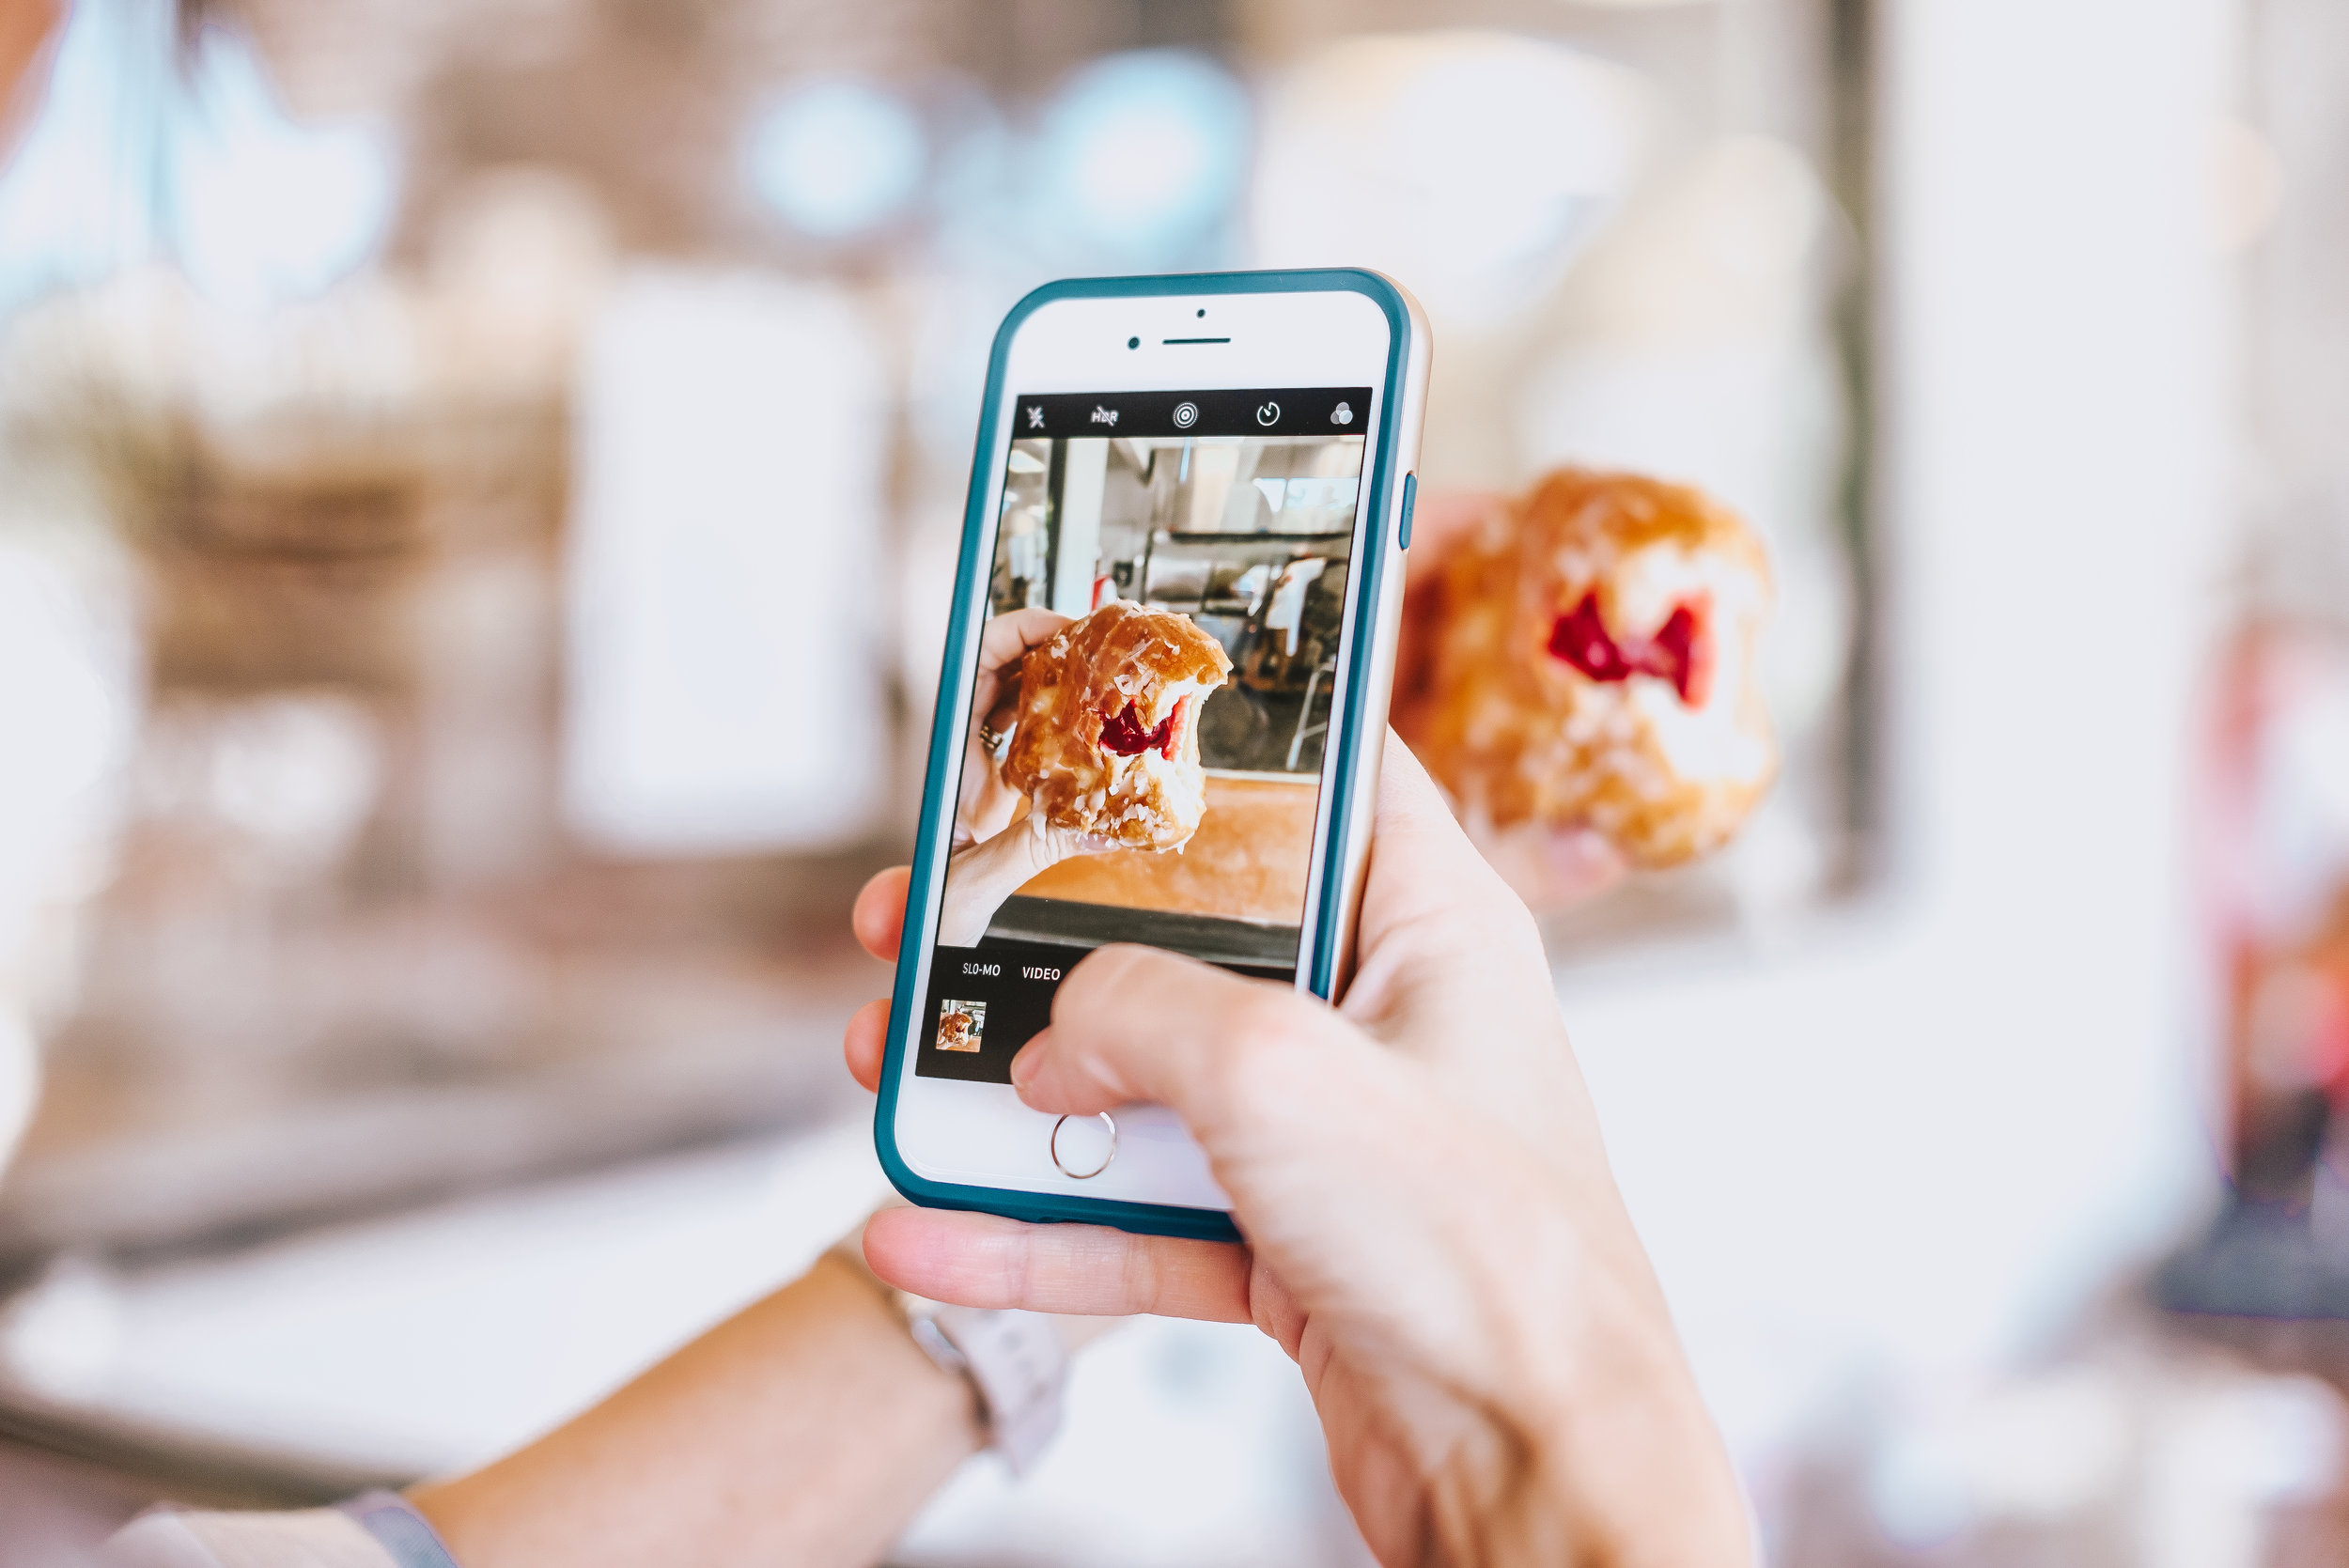 Currently, Instagramhas more than 500million active users,and more than 60million photos areshared perday. - It is one of the most popular and influential social networks. In fact, thanks to this popularity and the demand it has, more and more brands have decided to develop marketing campaigns on the platform.